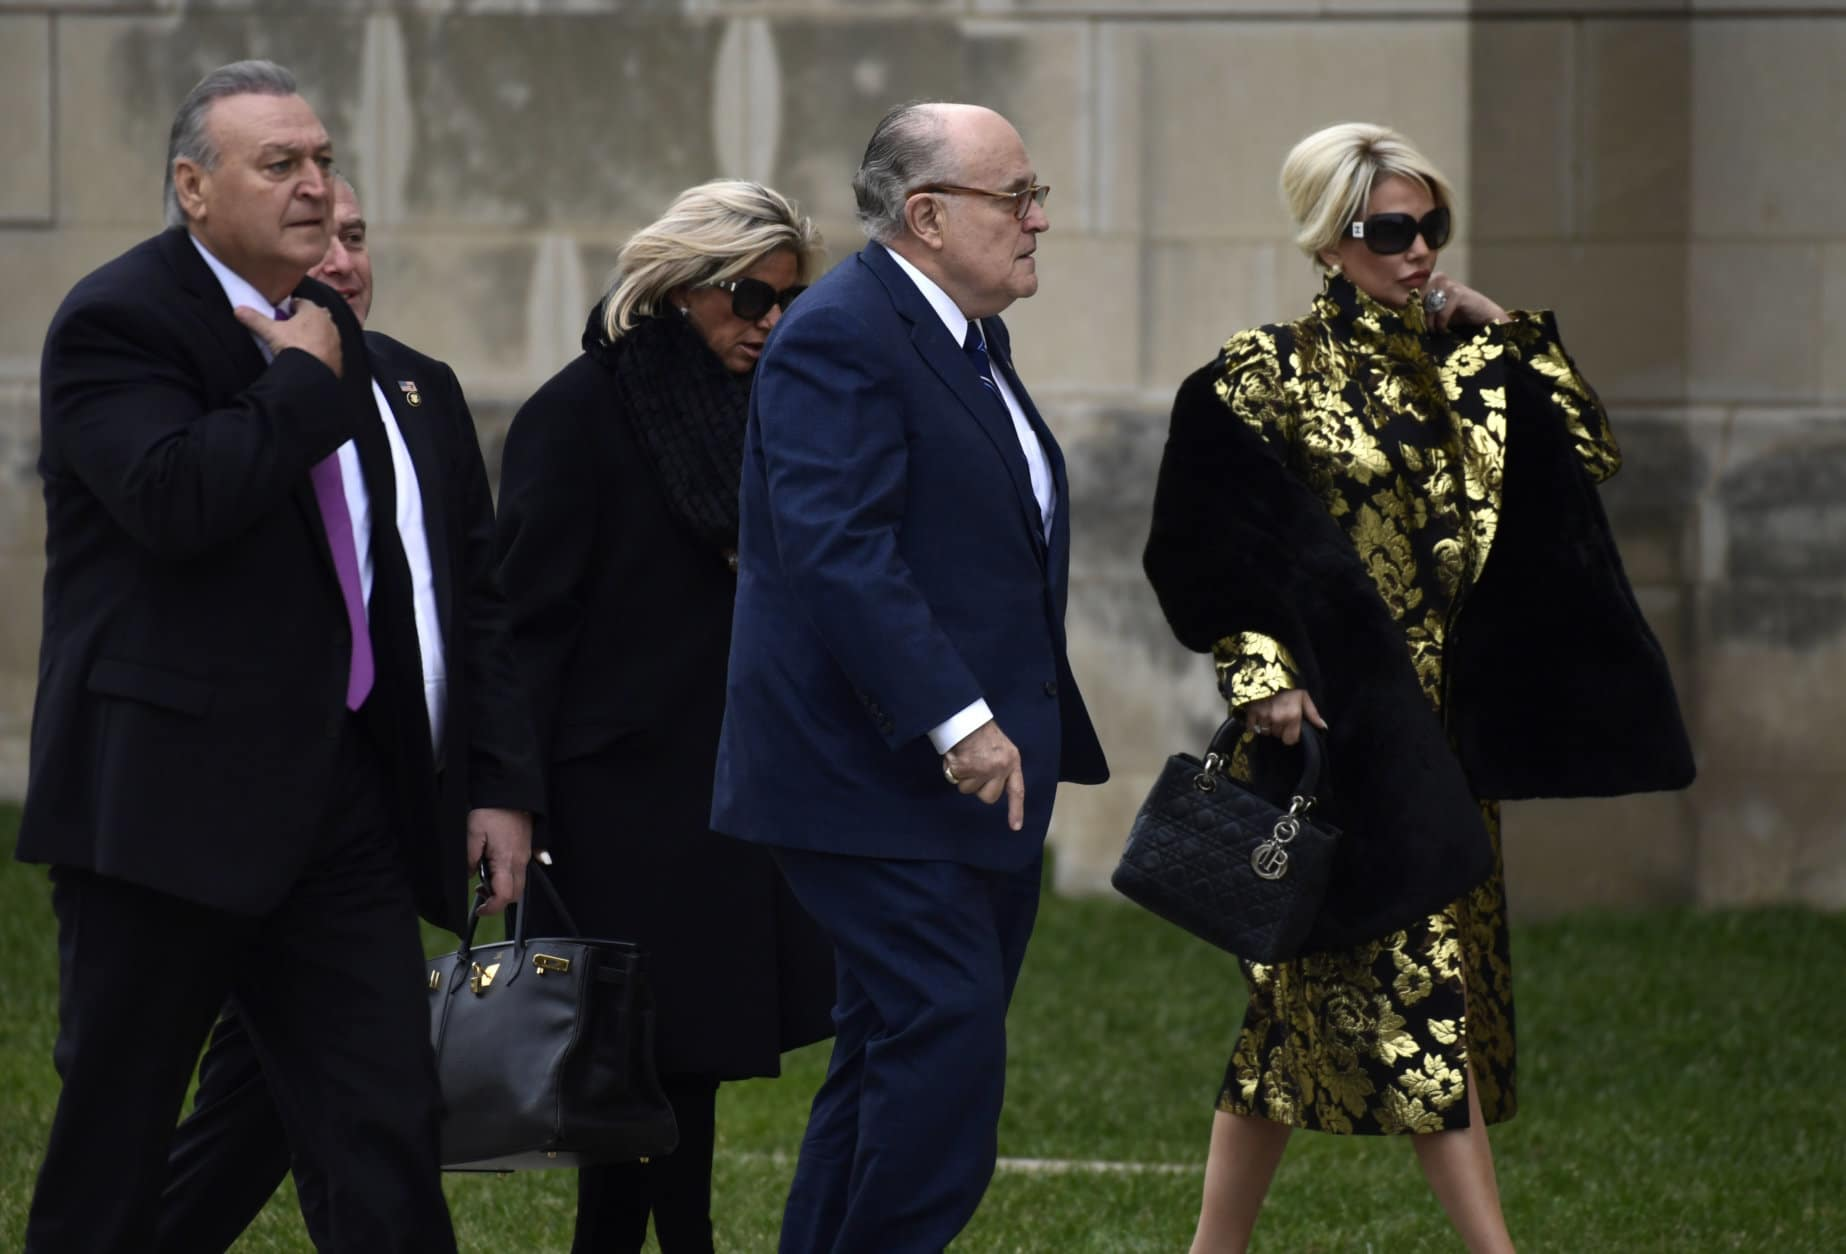 Rudy Guiliani, center, and other guests, arrive for the State Funeral of former President George H.W. Bush at the National Cathedral in Washington, Wednesday, Dec. 5, 2018. (AP Photo/Susan Walsh)